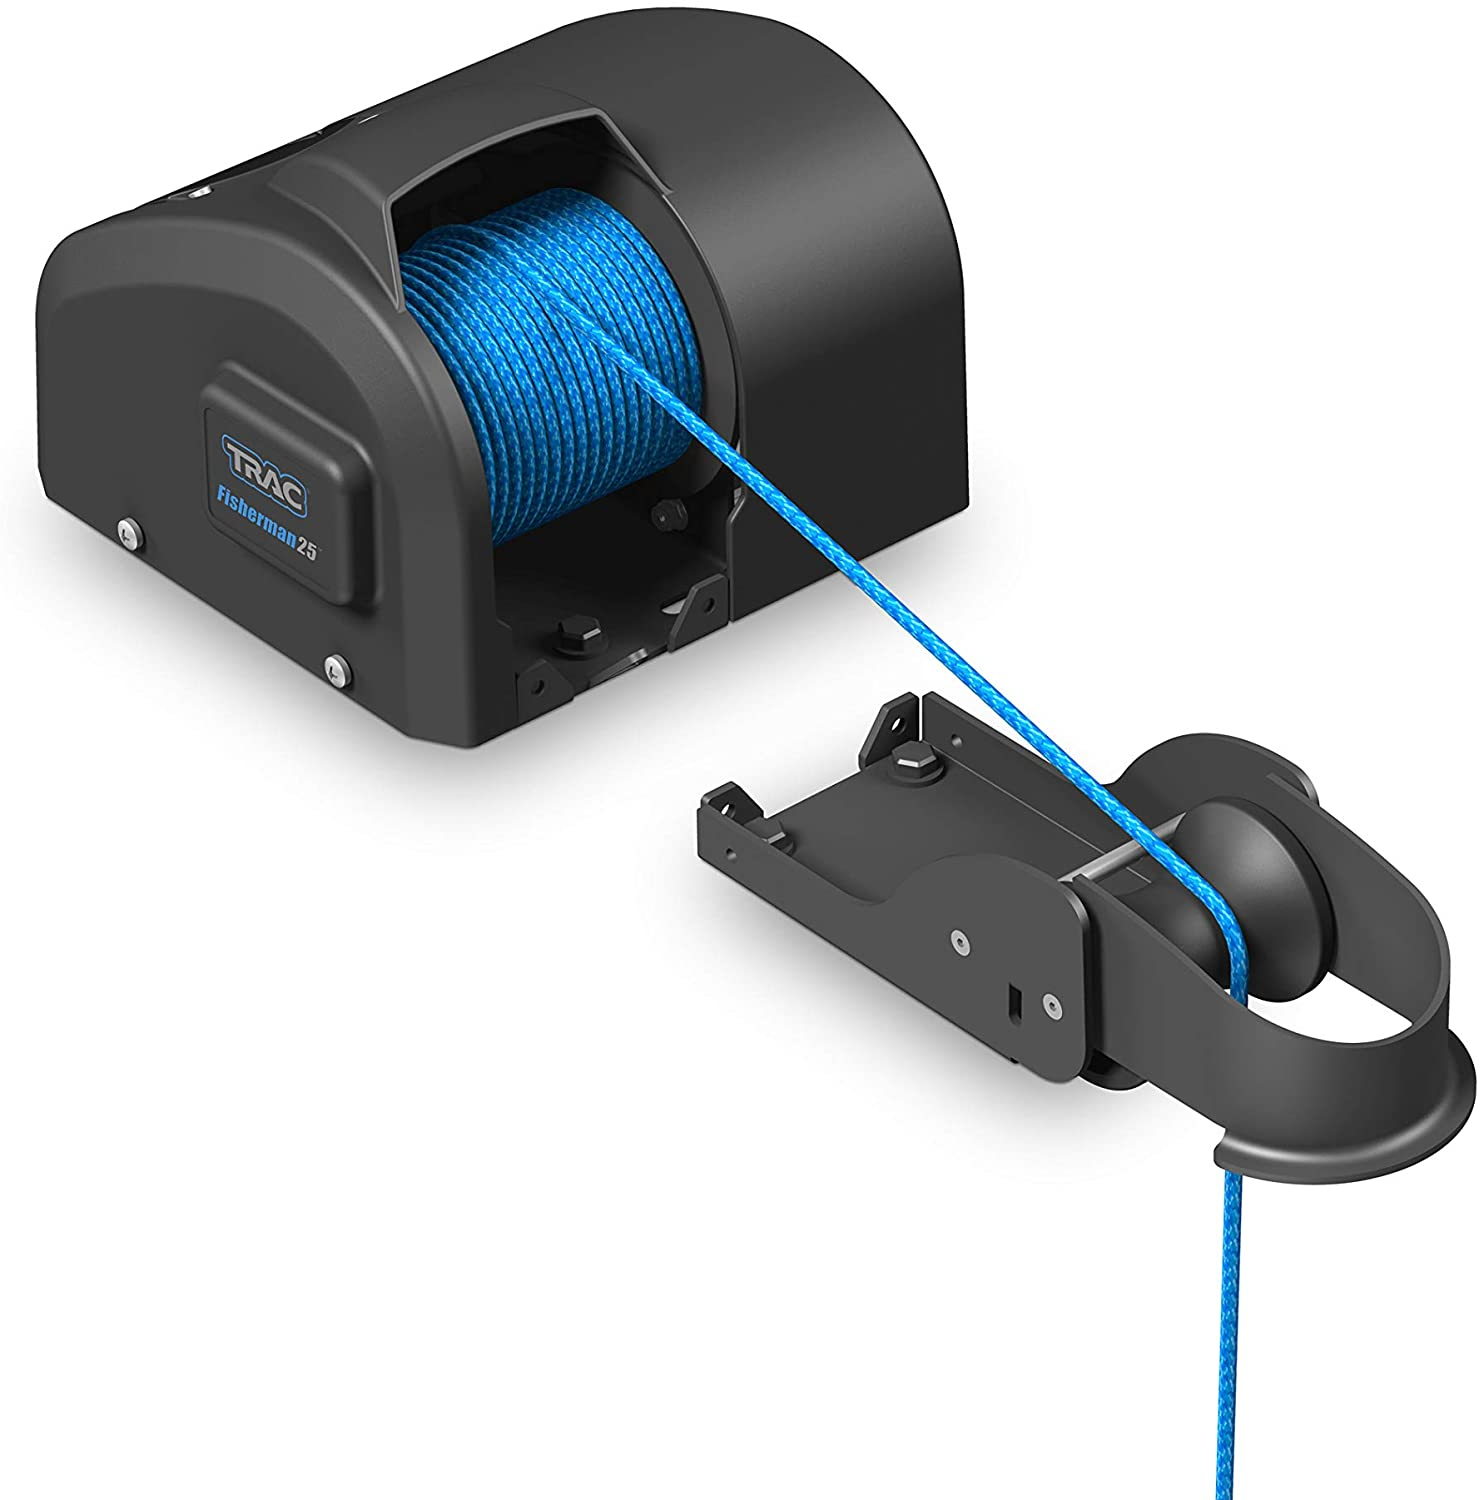 Trac Outdoors Fisherman 25-G3 Electric Anchor Winch - Anchors Up to 25 lb. - Includes 100-feet of Pre-Wound Anchor Rope with Use (69002)